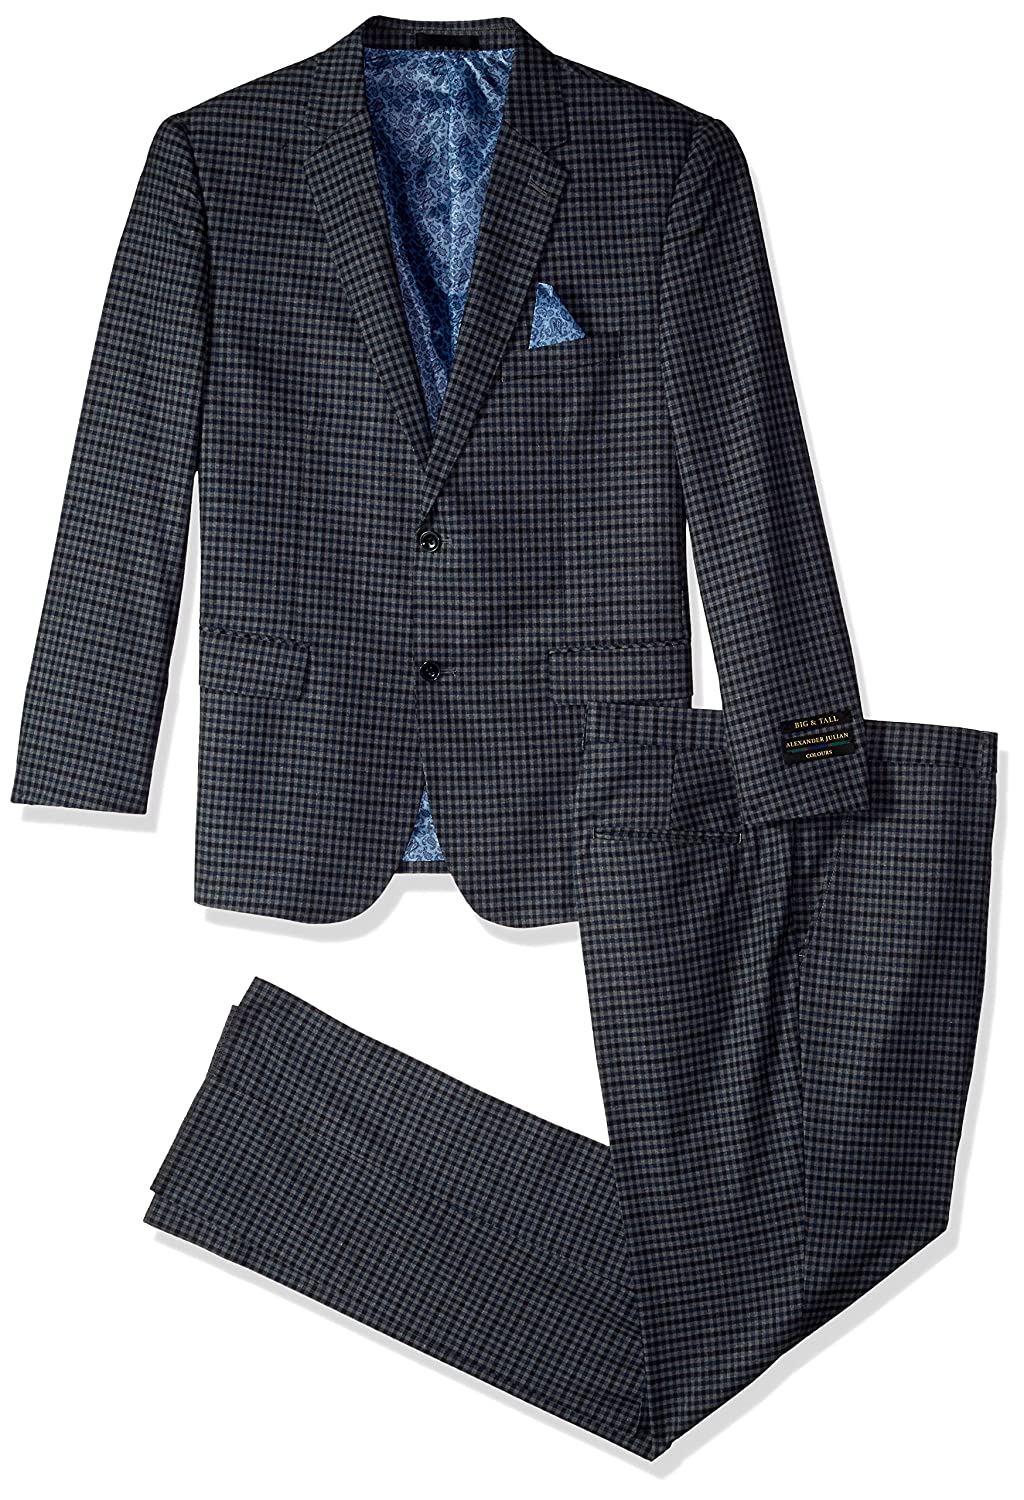 Alexander Julian Colours Men's Big and Tall Single Breasted Modern Fit Check Suit Alexander Julian Child Code 17891-01